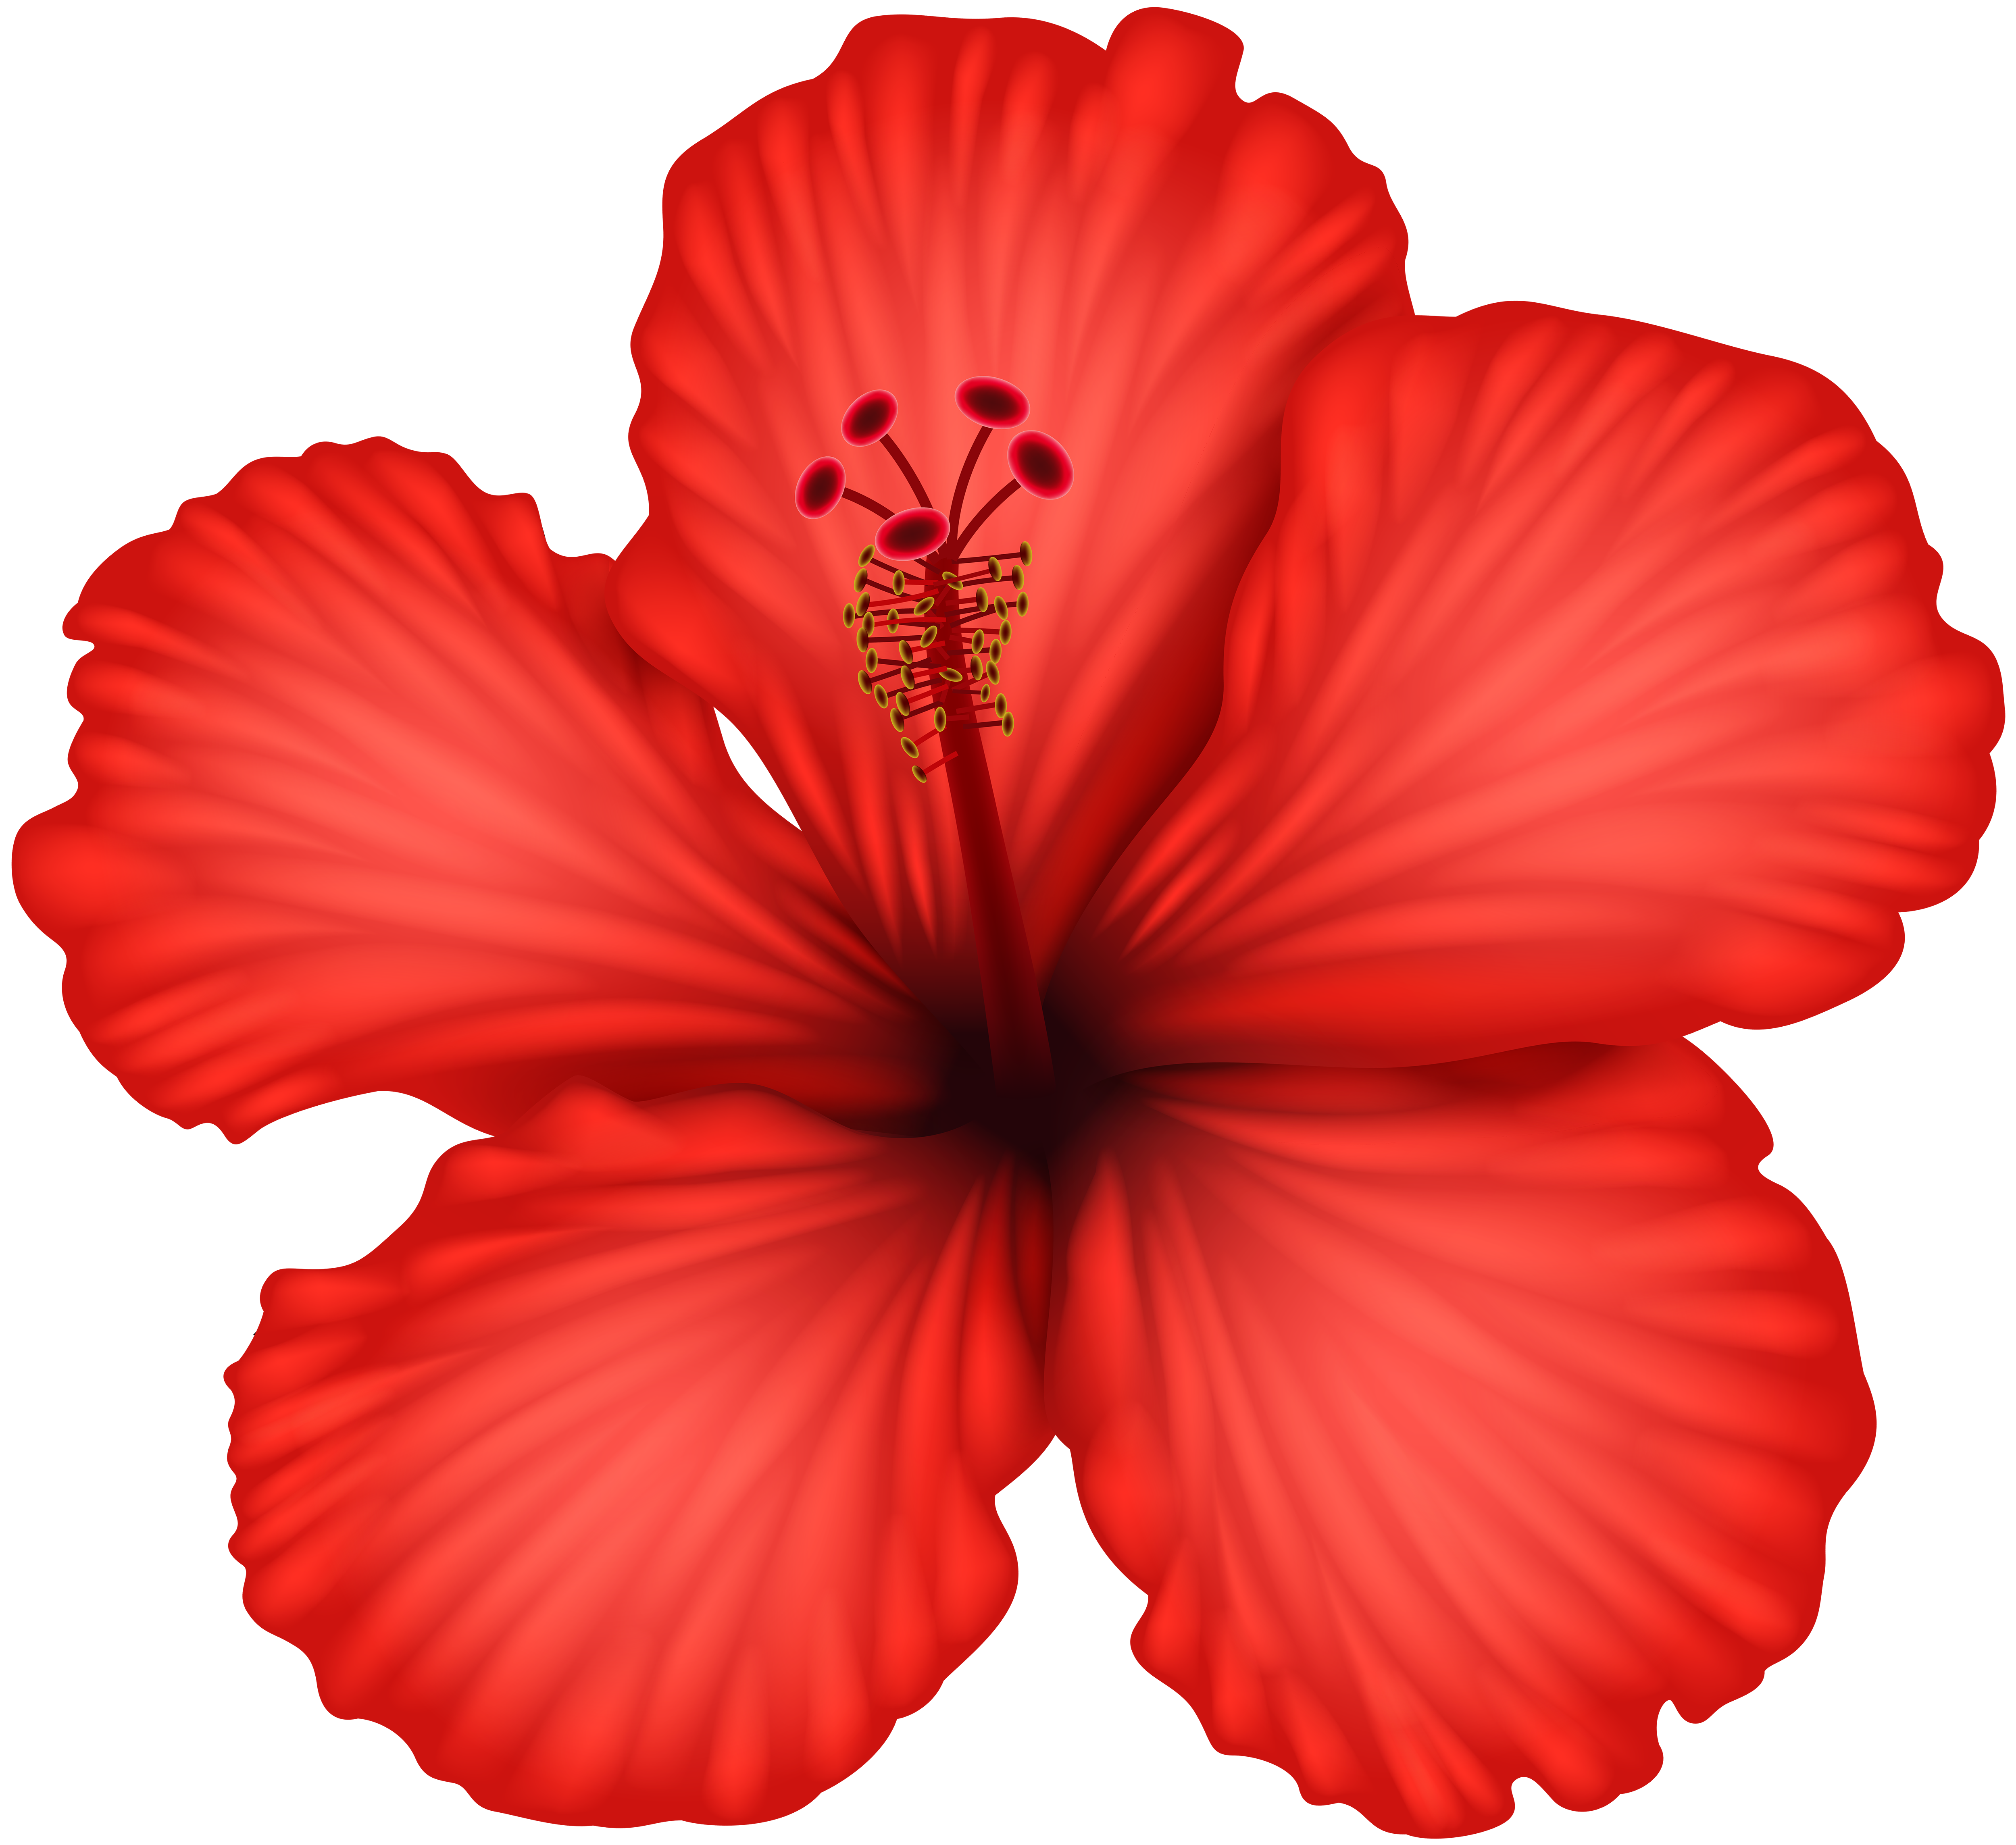 Hibiscus clipart png. Red clip art gallery